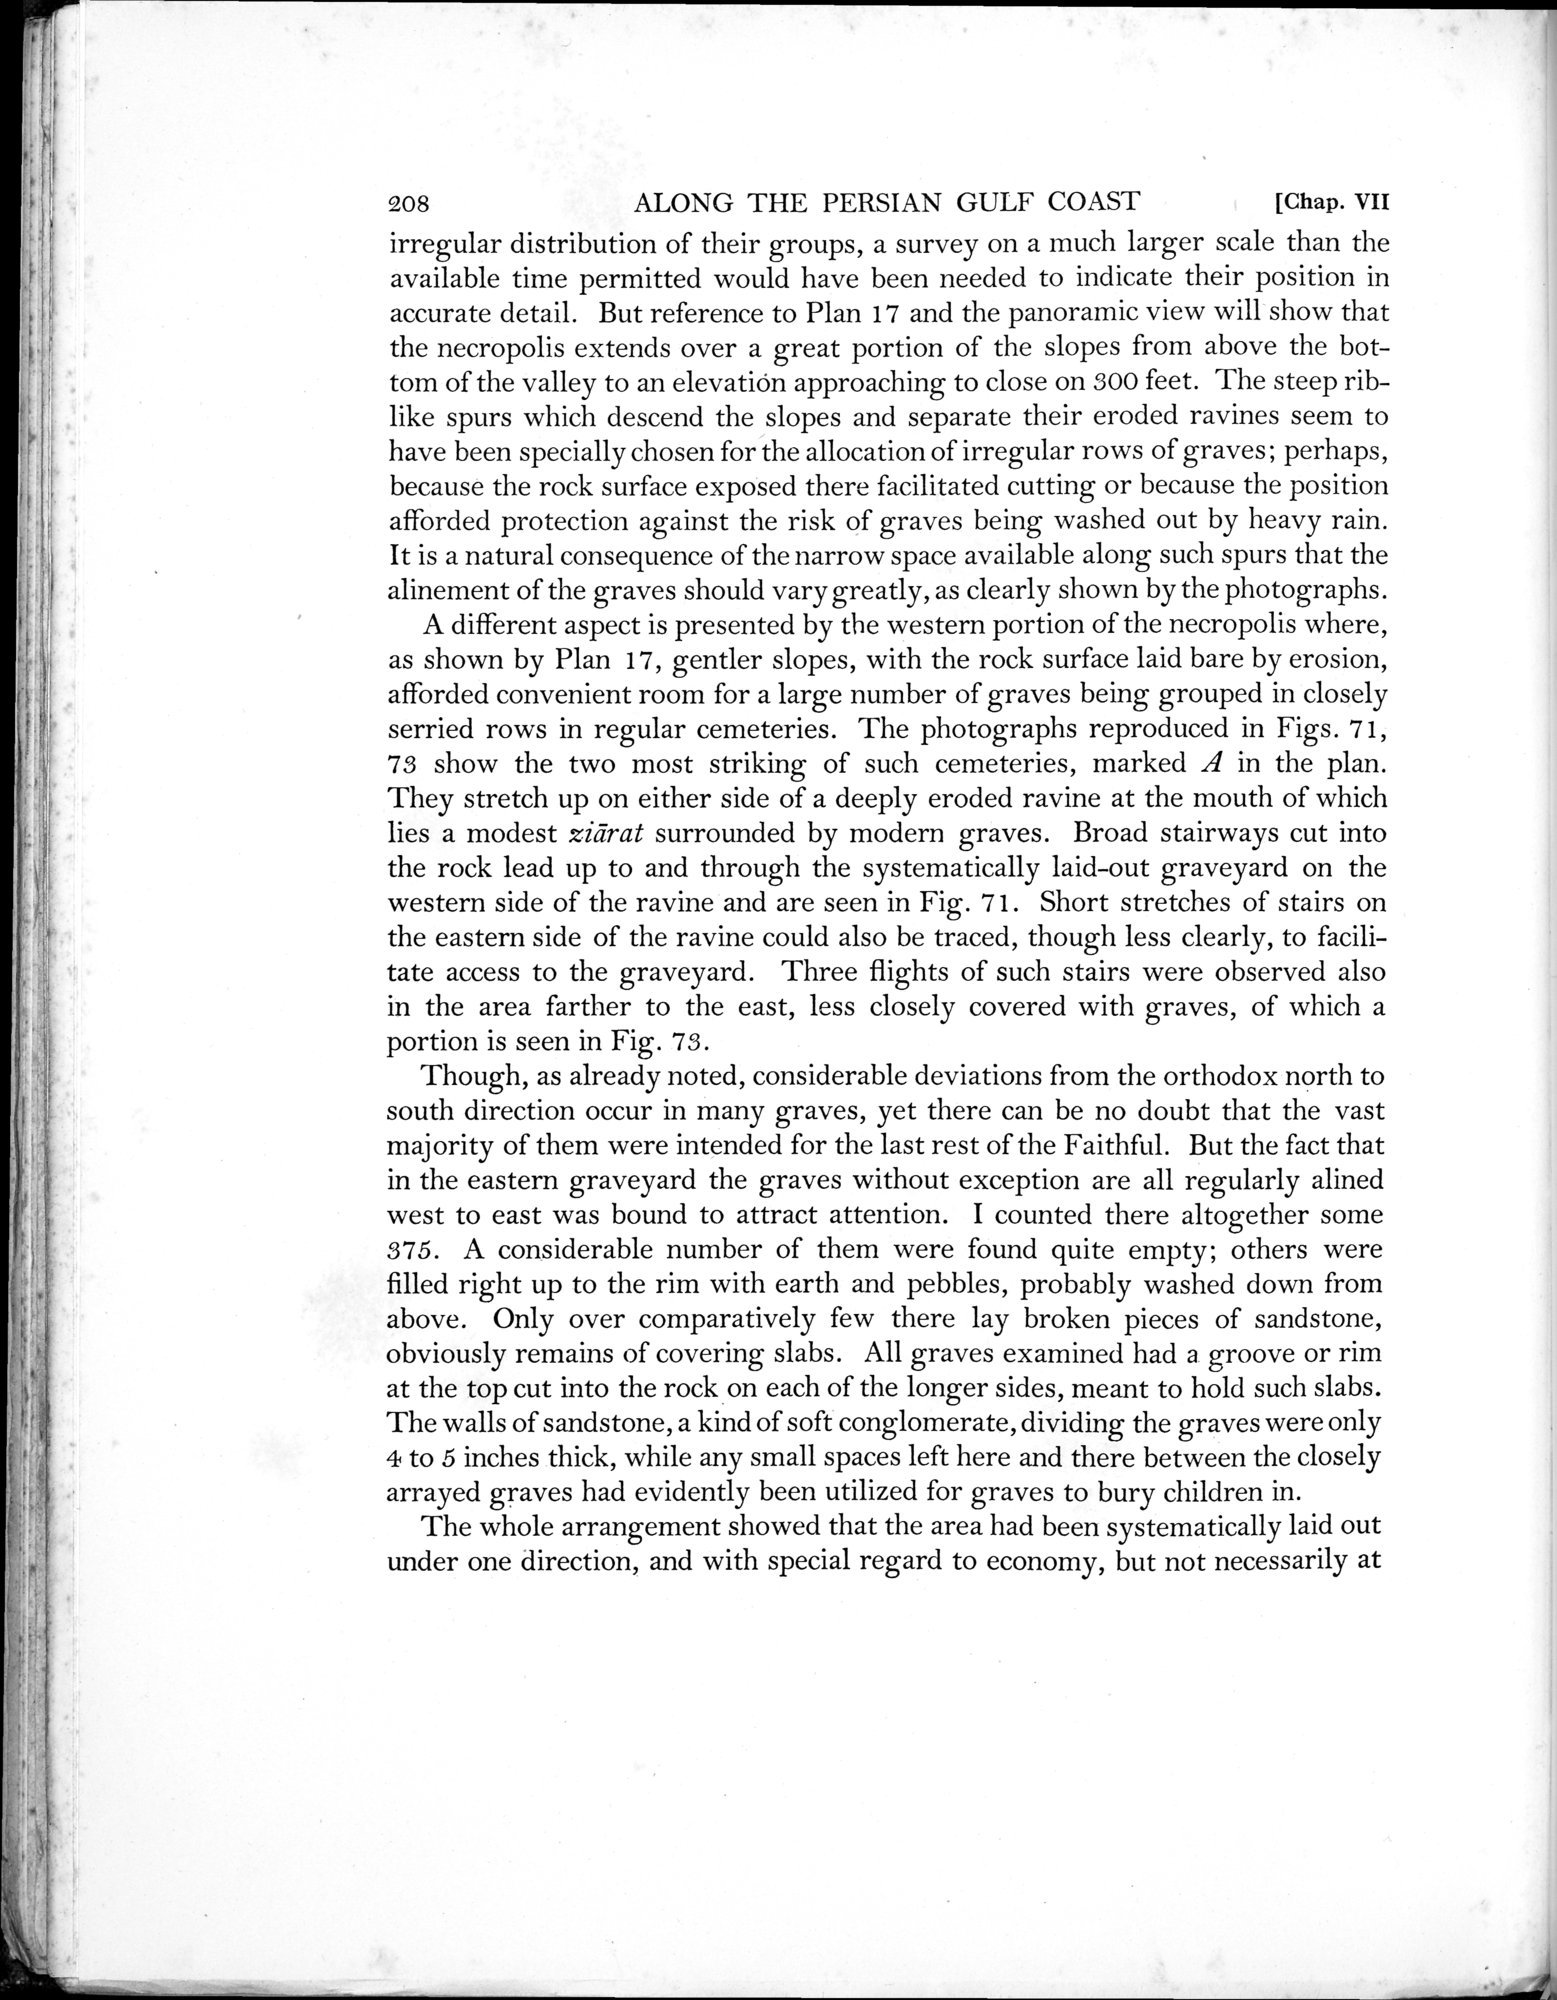 Archaeological Reconnaissances in North-Western India and South-Eastern Īrān : vol.1 / Page 280 (Grayscale High Resolution Image)